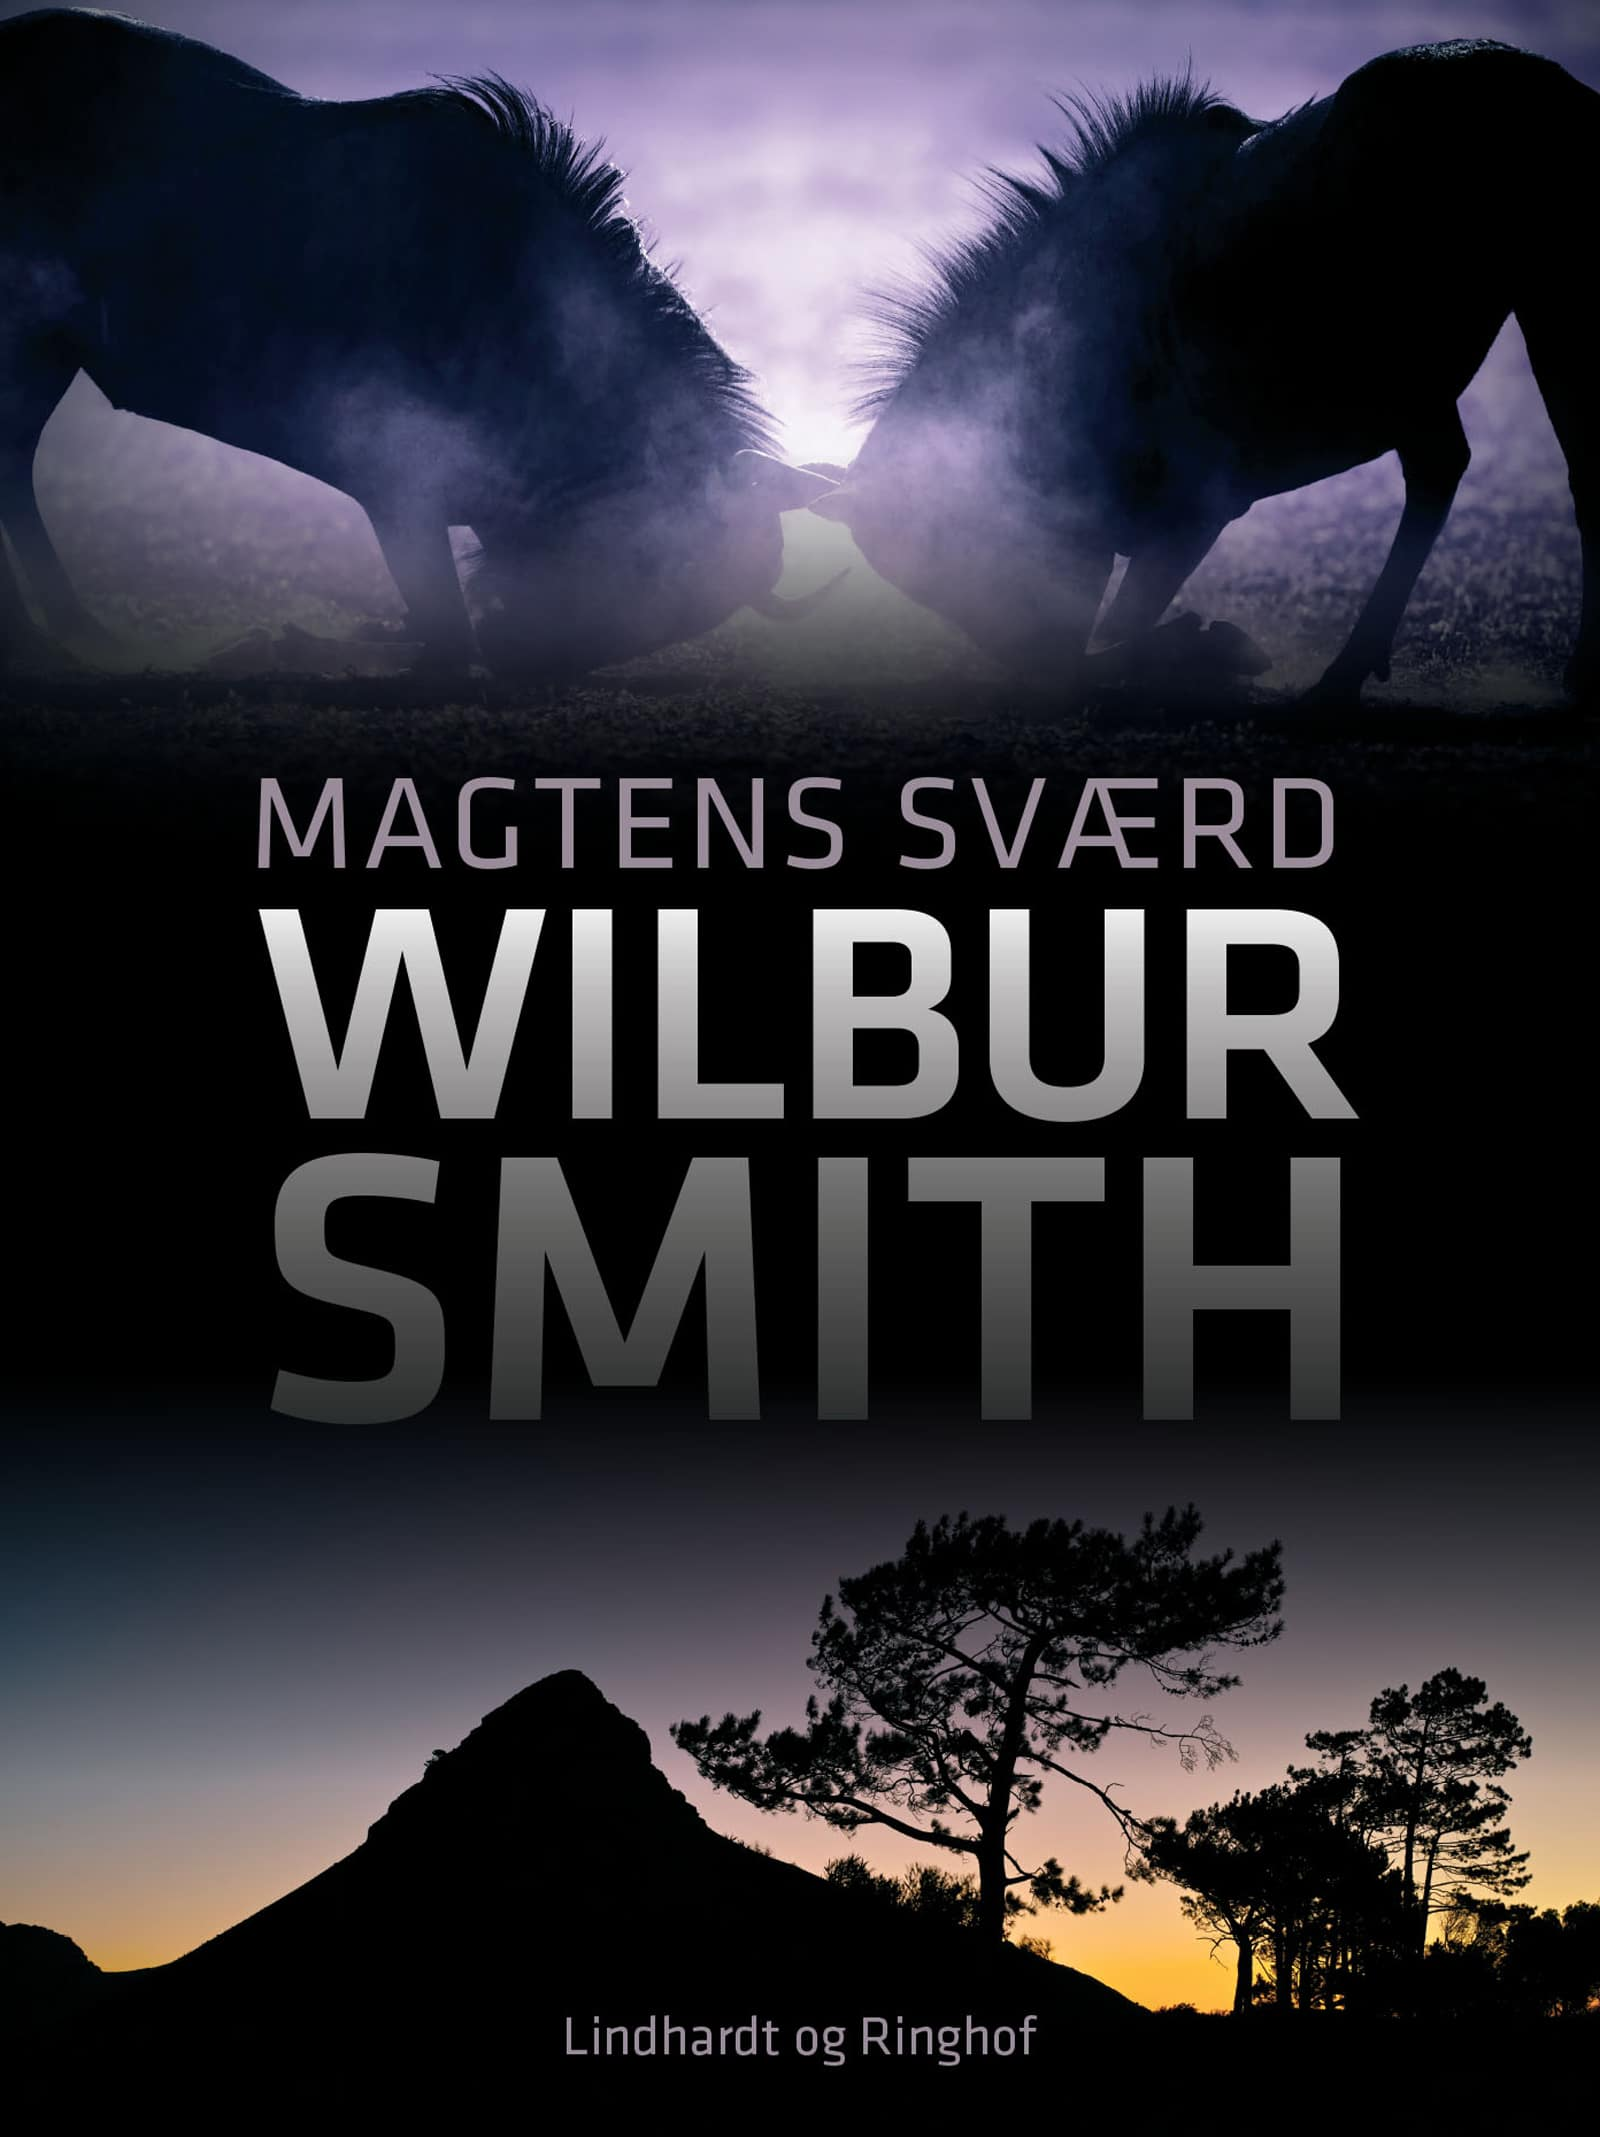 Wilbur Smith, Magtens sværd, Courtney-serien